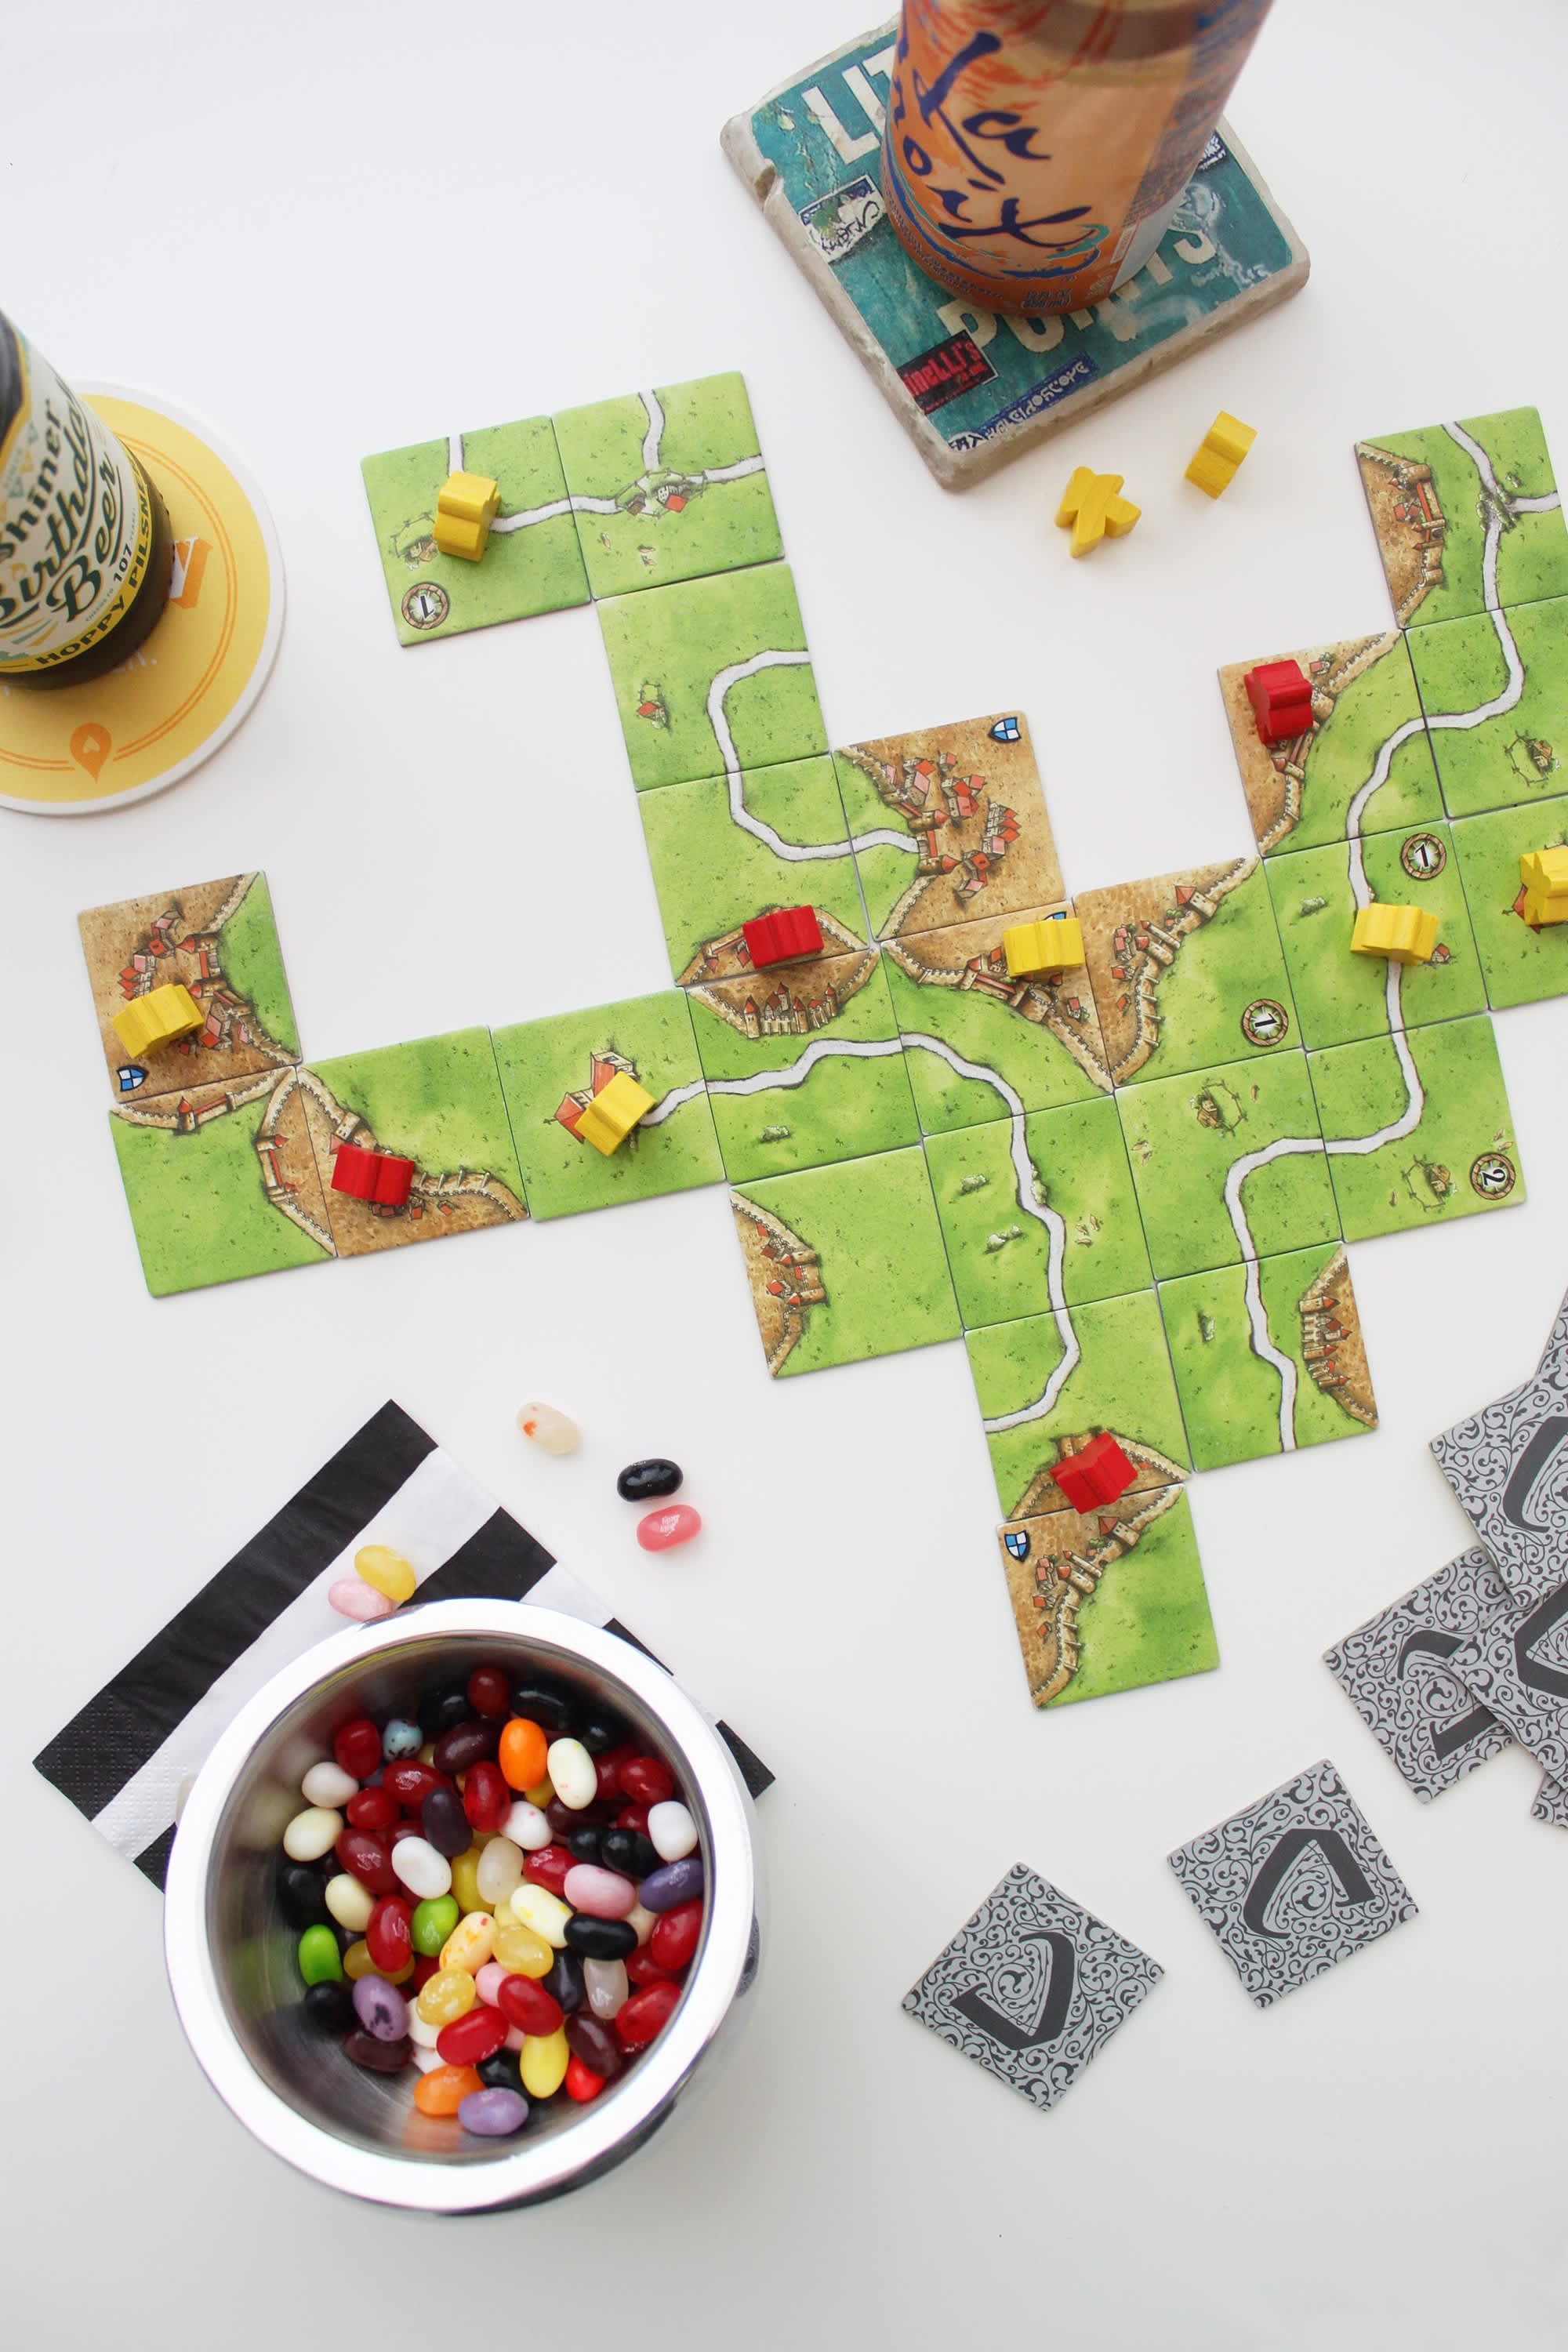 The Best 2-Player Board Games for Couples to Play at Home Together